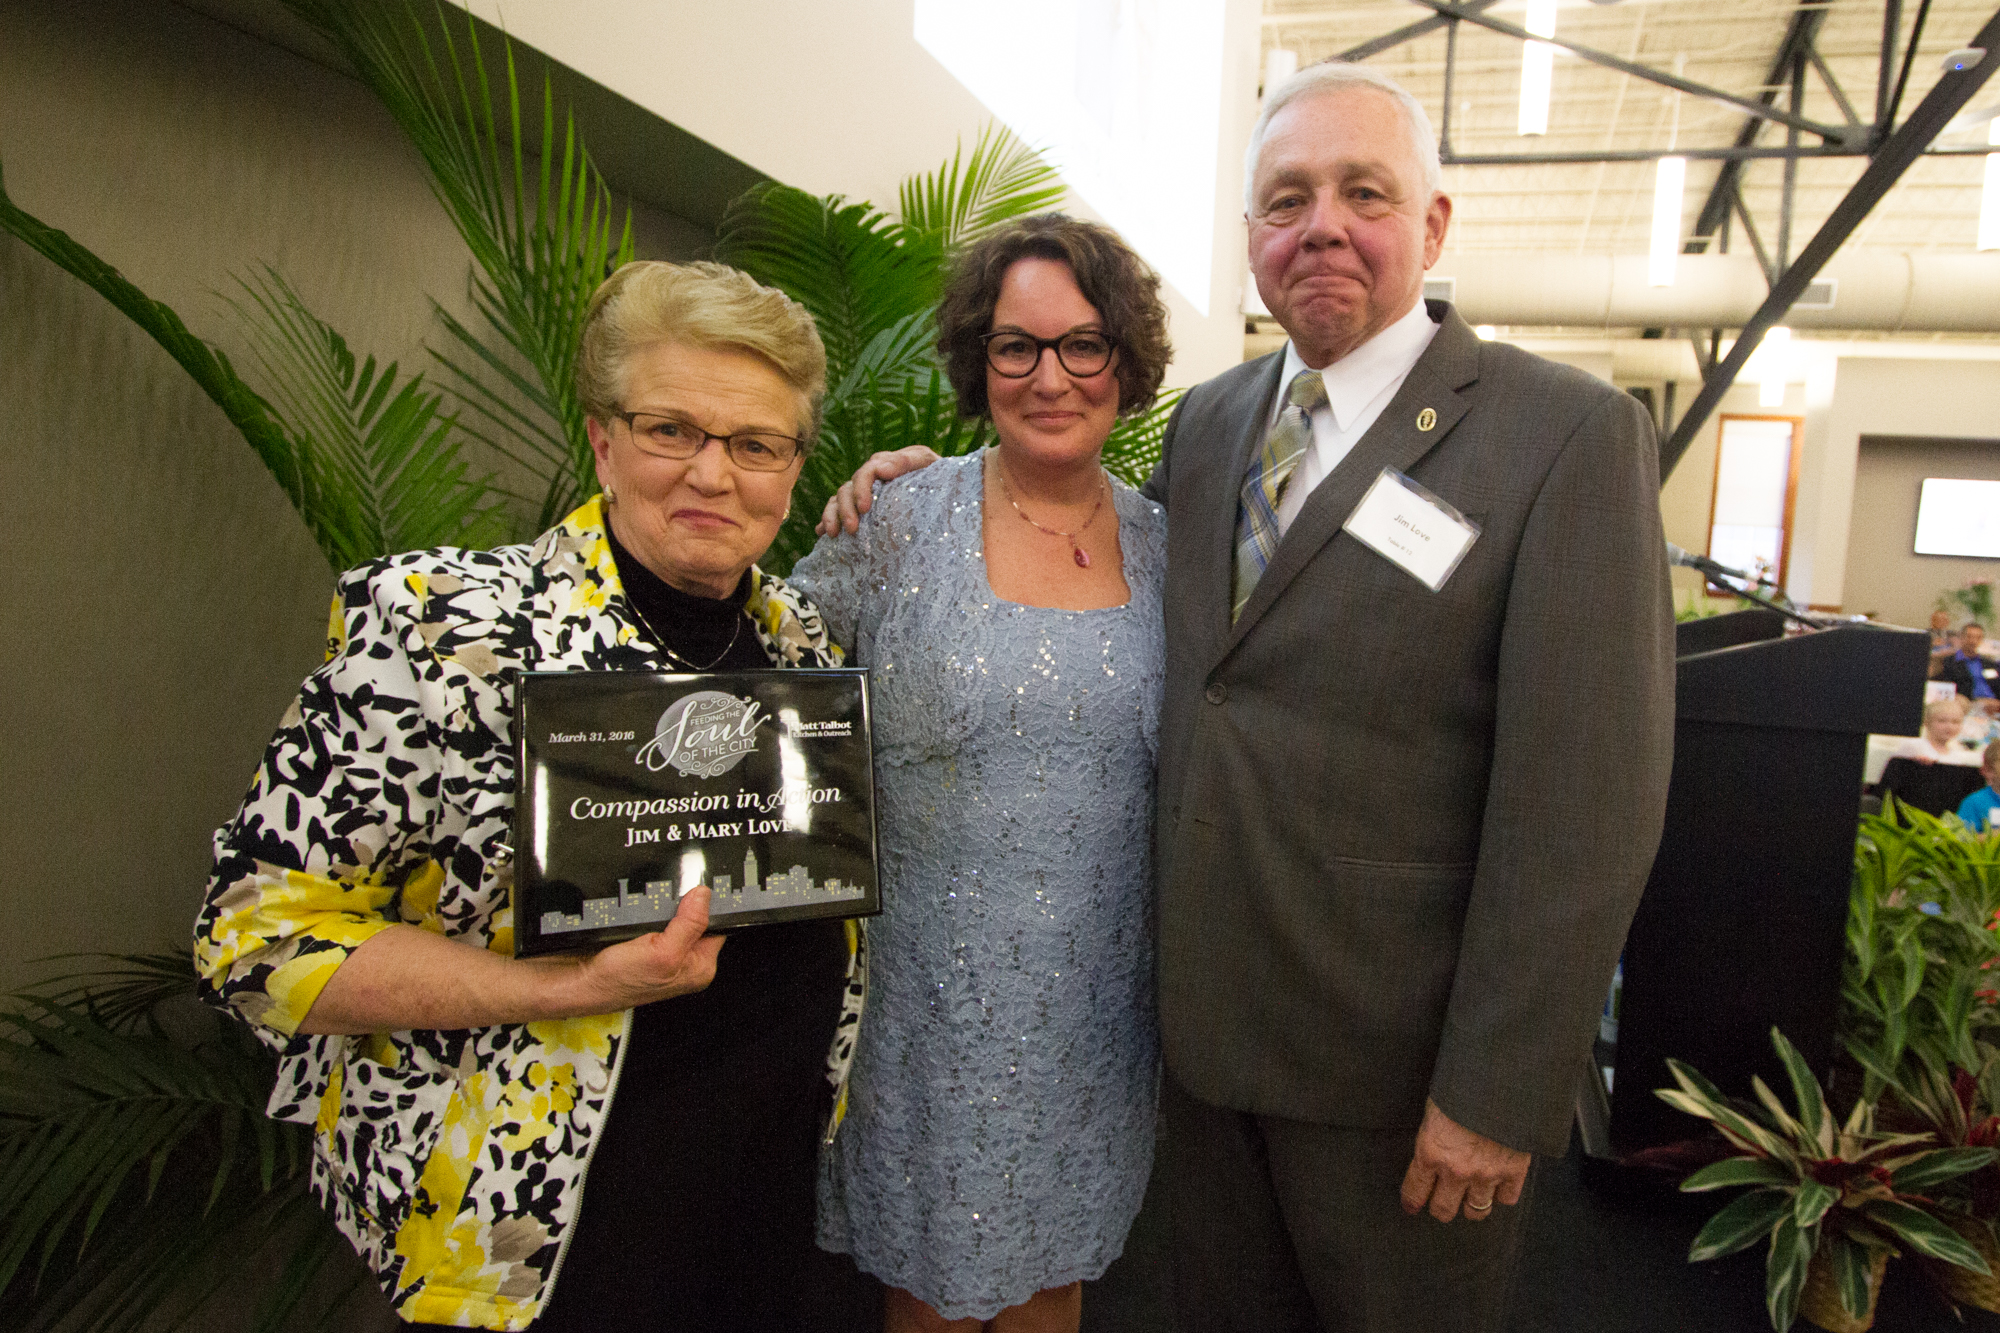 Mary Love, Susanne Blue, Jim Love after presentation of Compassion in Action Award.